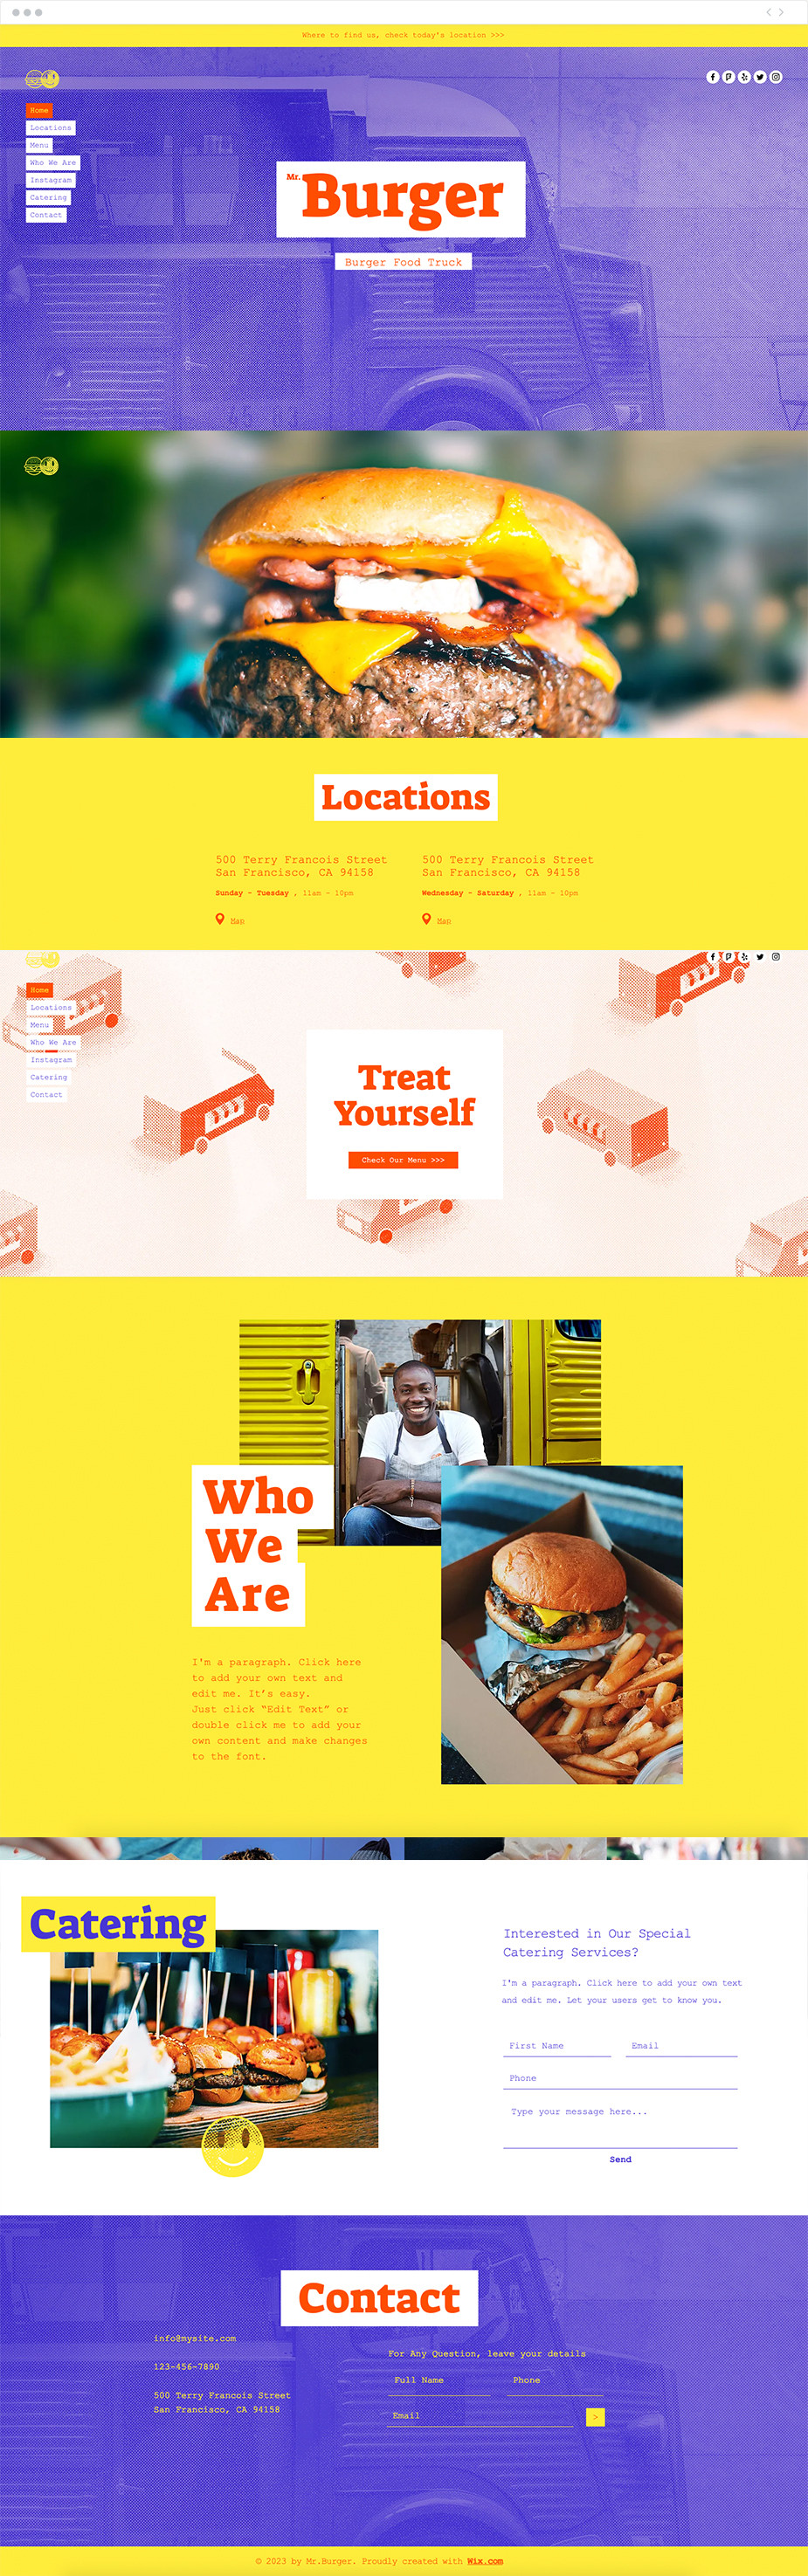 Food Truck Website Template